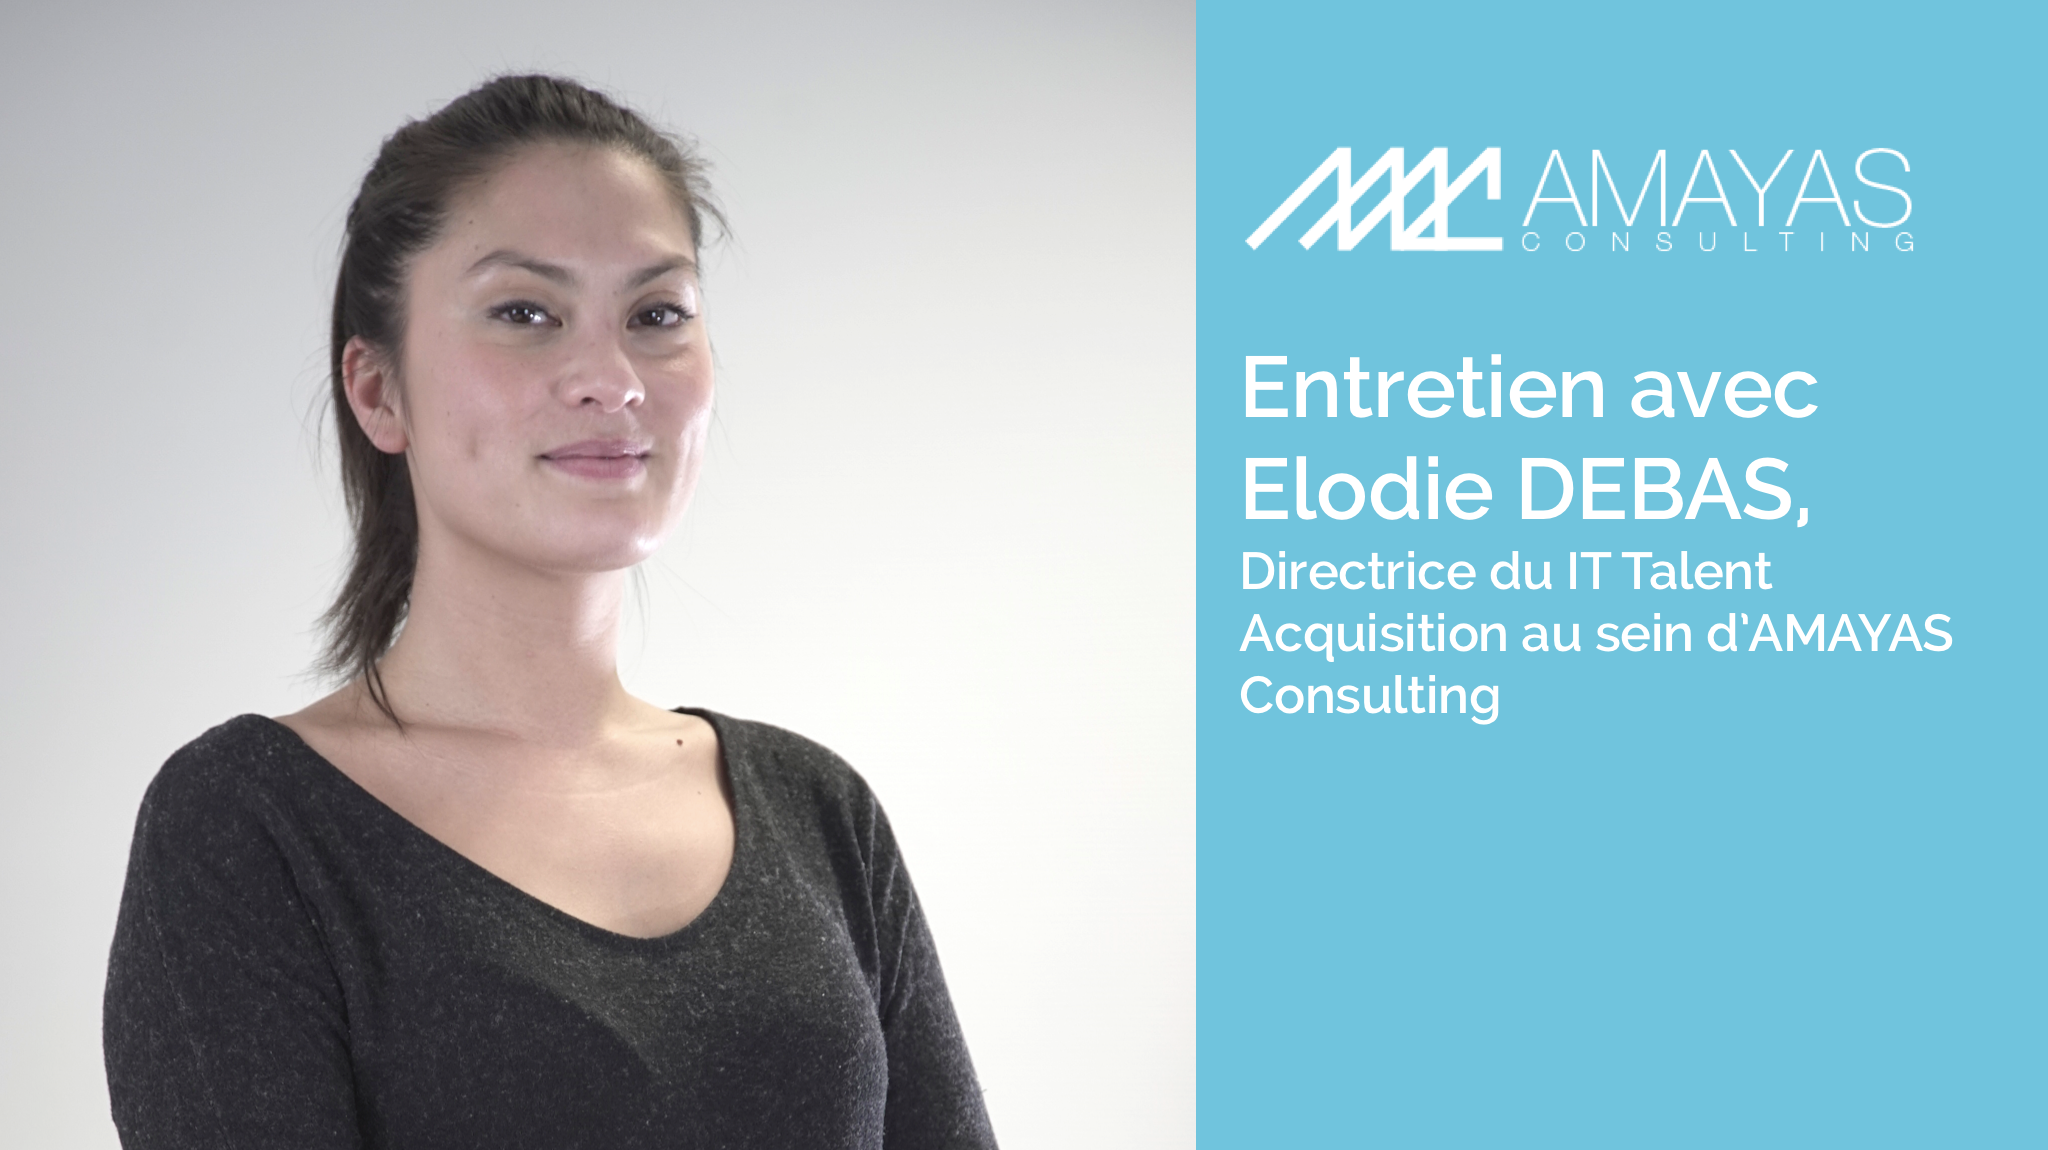 Entretien avec Elodie DEBAS, Directrice du IT Talent Acquisition au sein d'AMAYAS Consulting